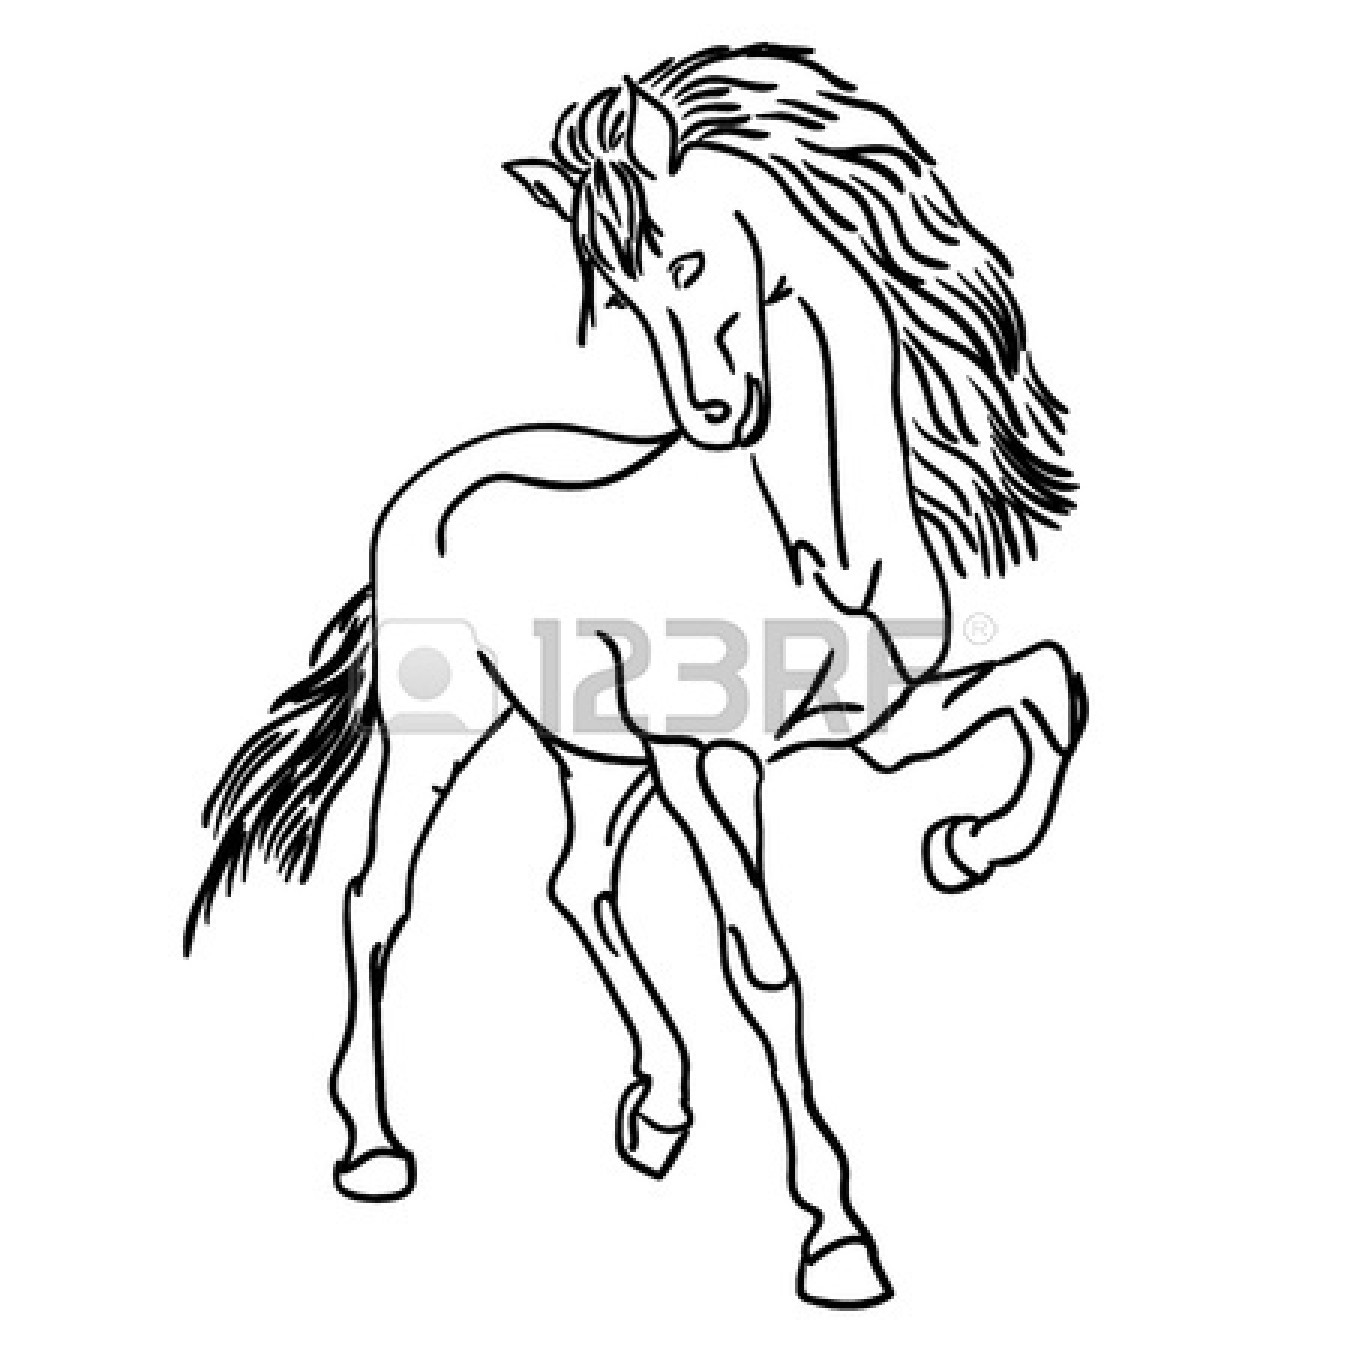 1350x1350 Vector Version Black Horse Silhouette Isolated On White